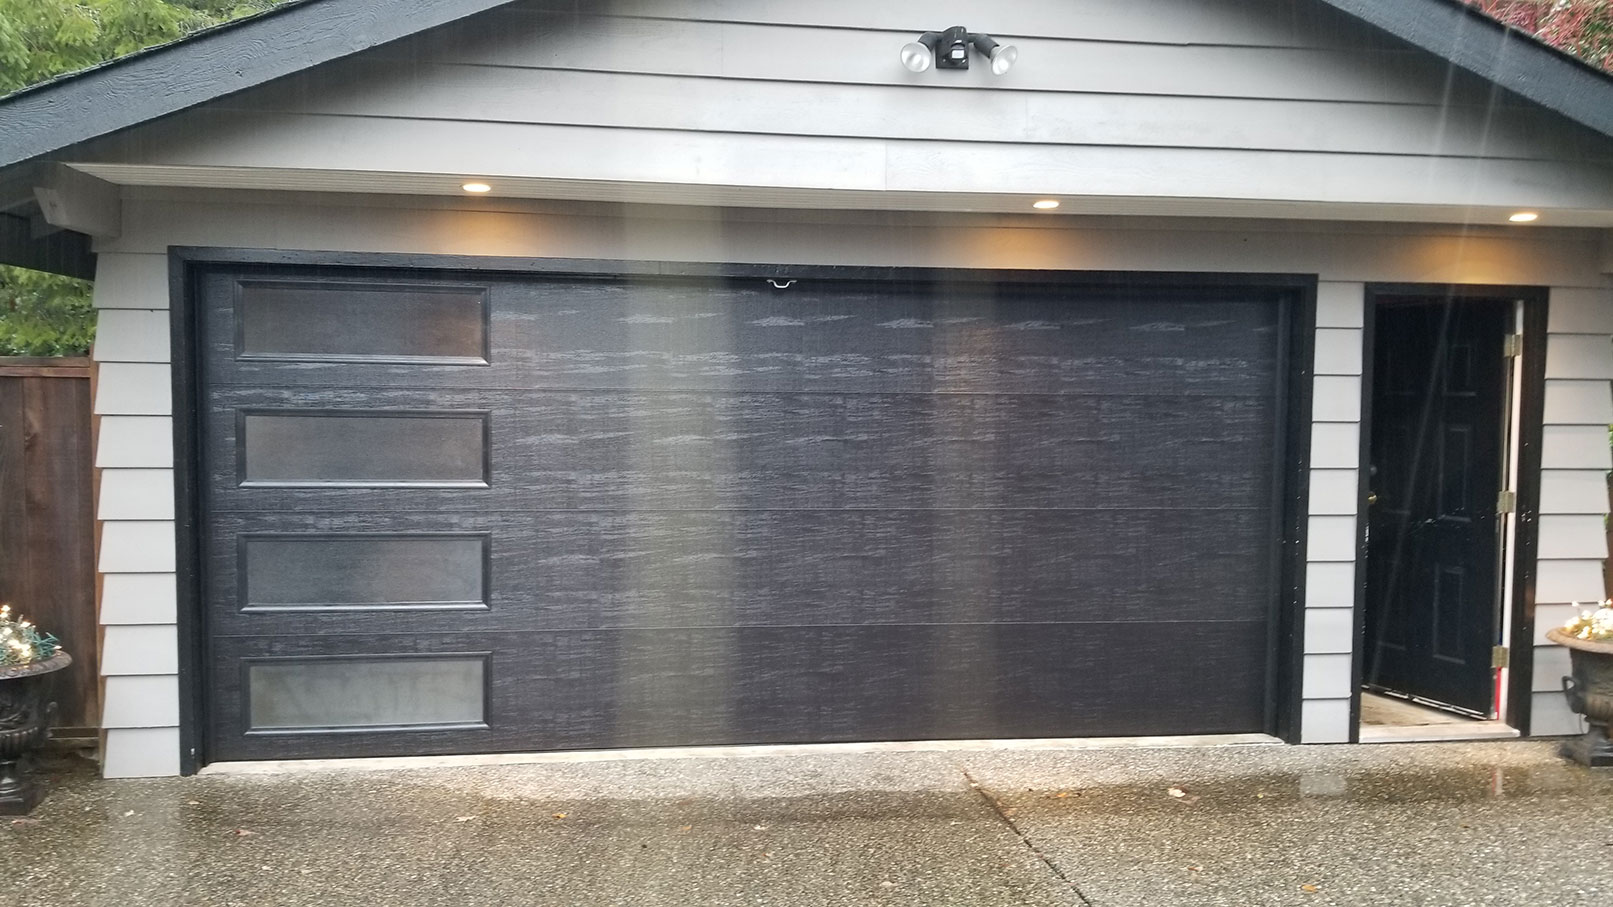 2. Residential Garage Door Replacement After